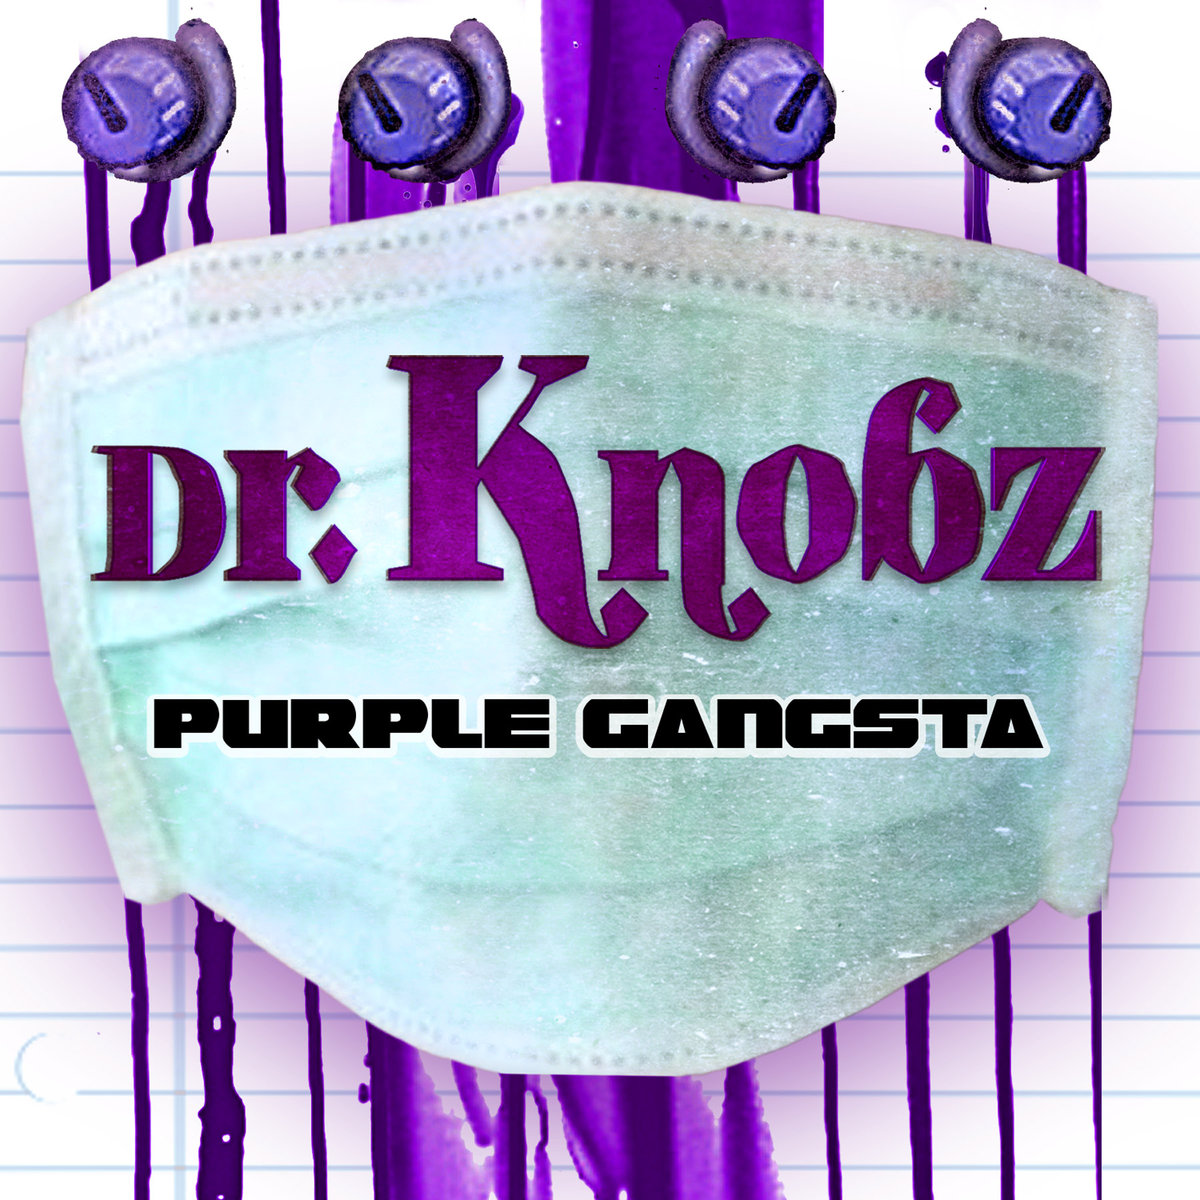 6Blocc - Bad Boy (Dr. Knobz Remix) @ 'Purple Gangsta' album (electronic, dubstep)